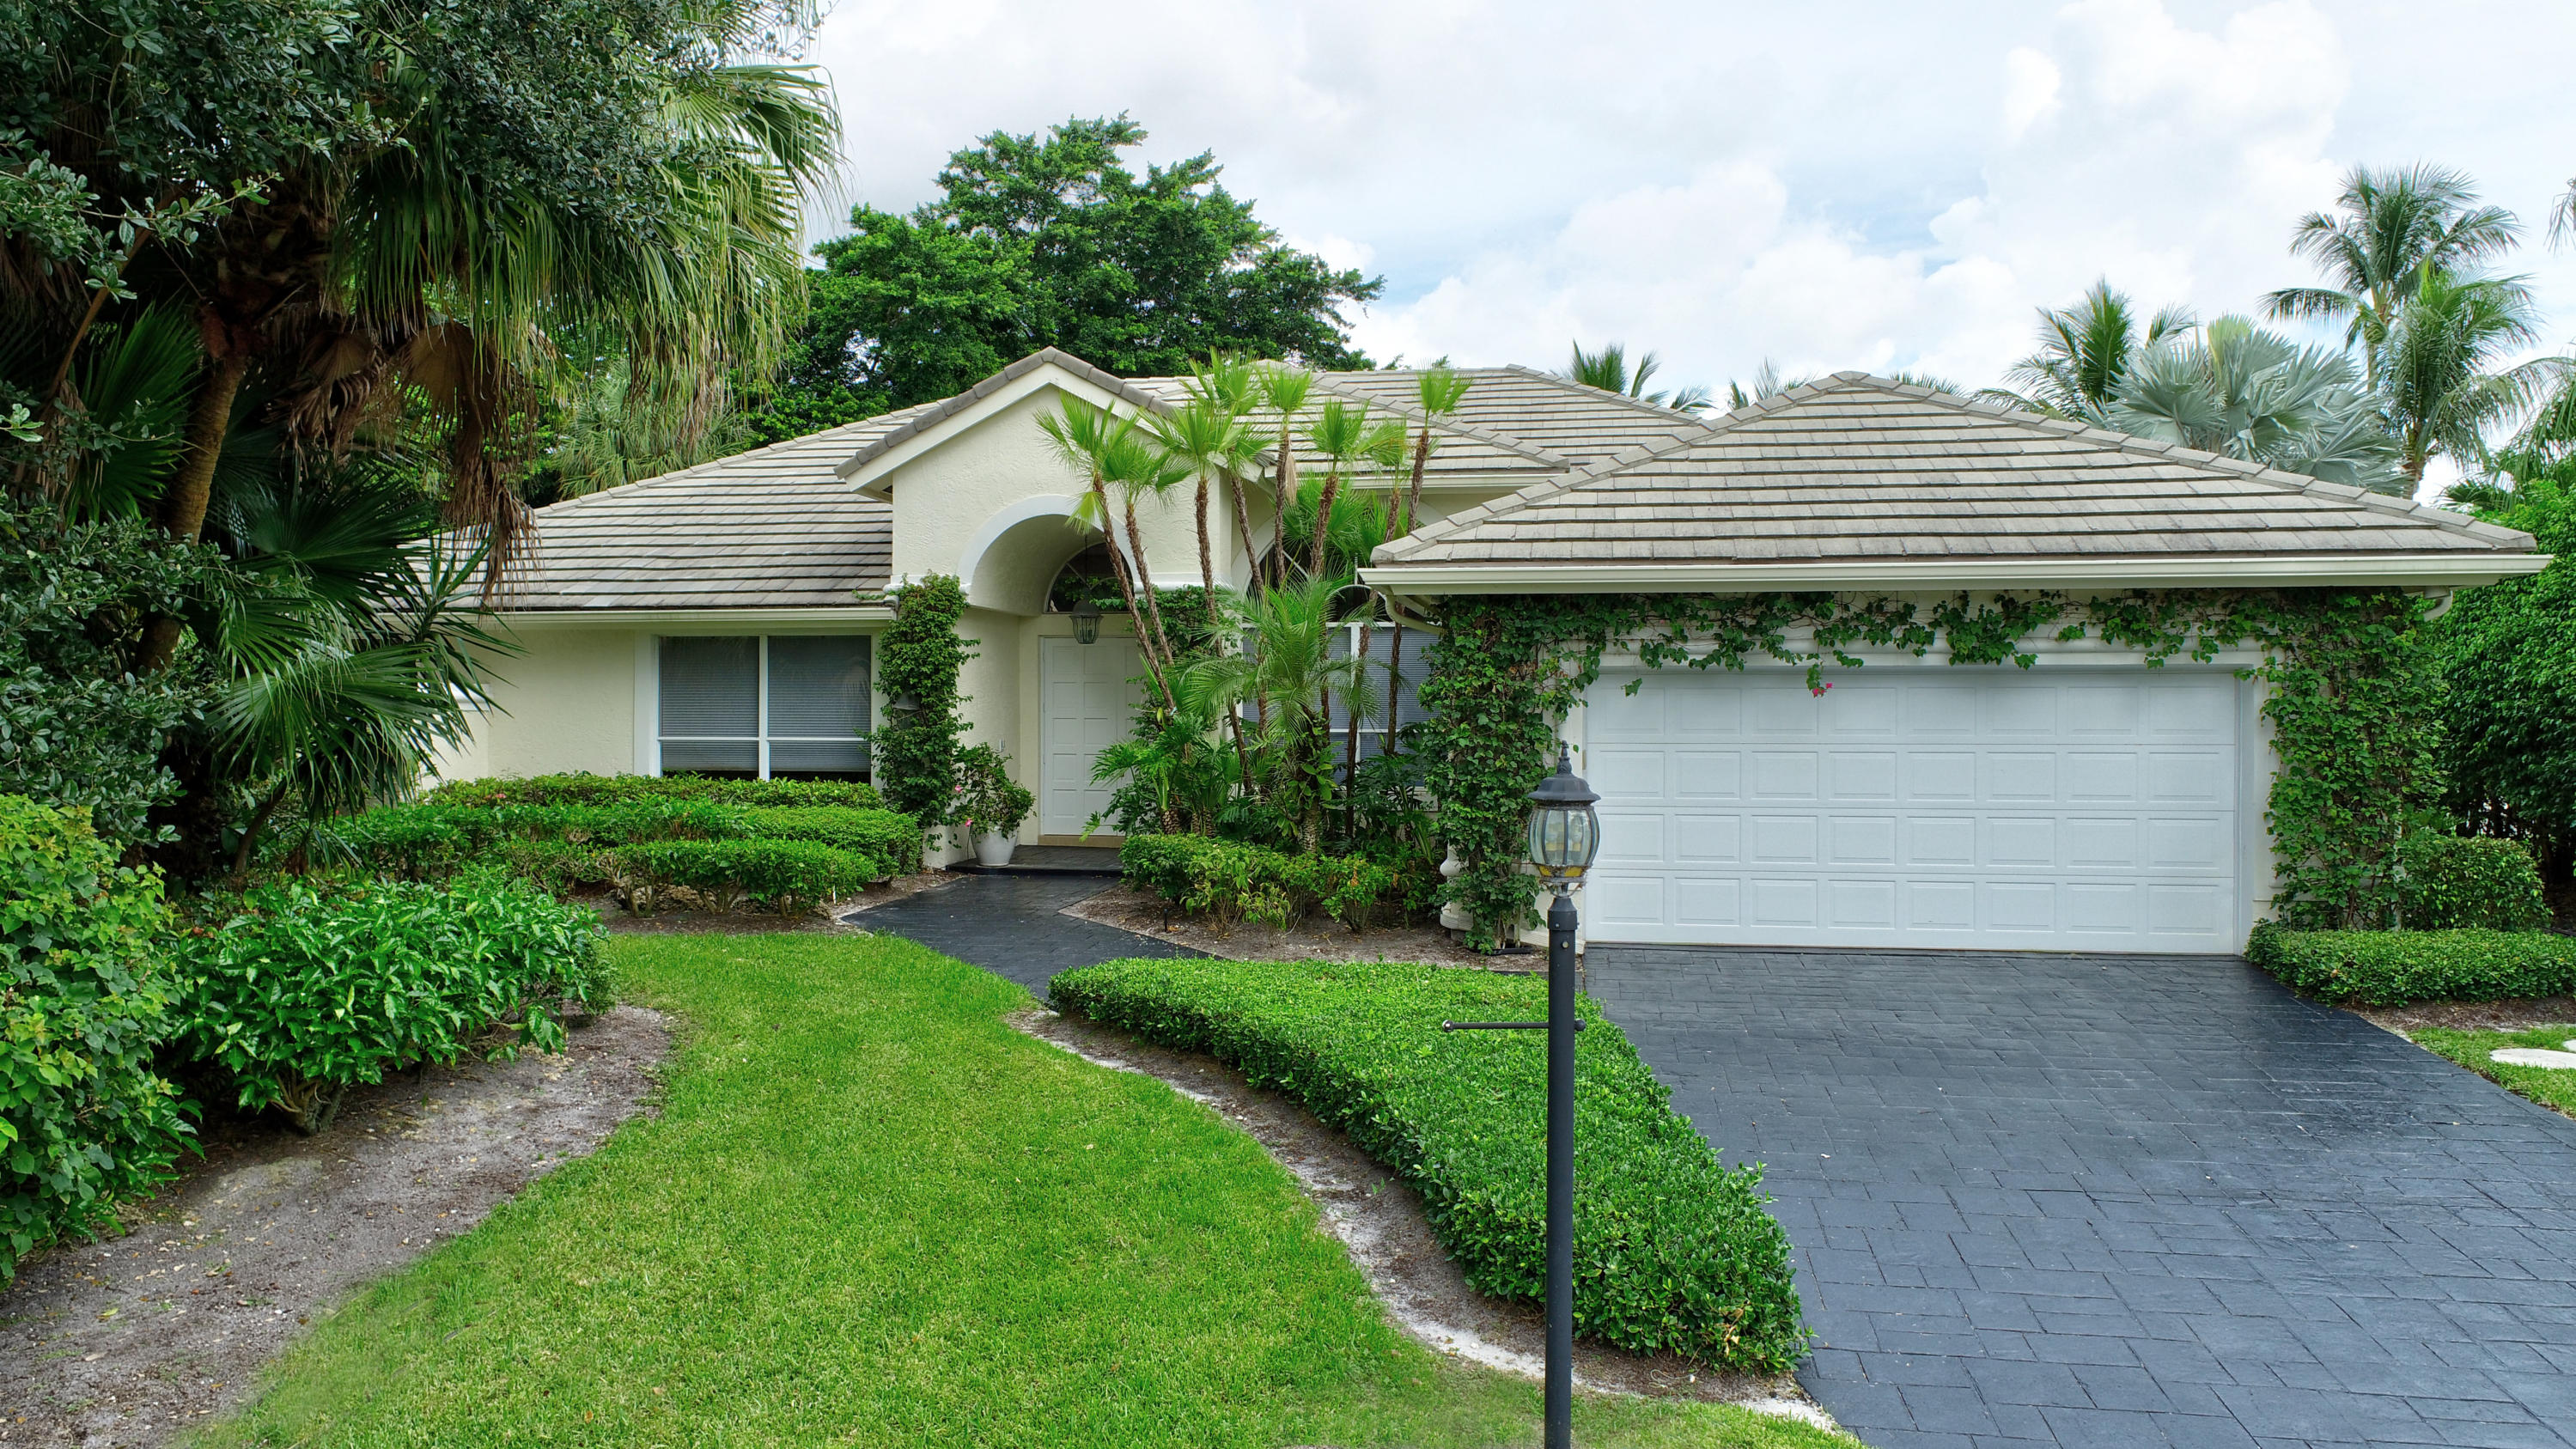 Details for 17548 Scarsdale Way, Boca Raton, FL 33496